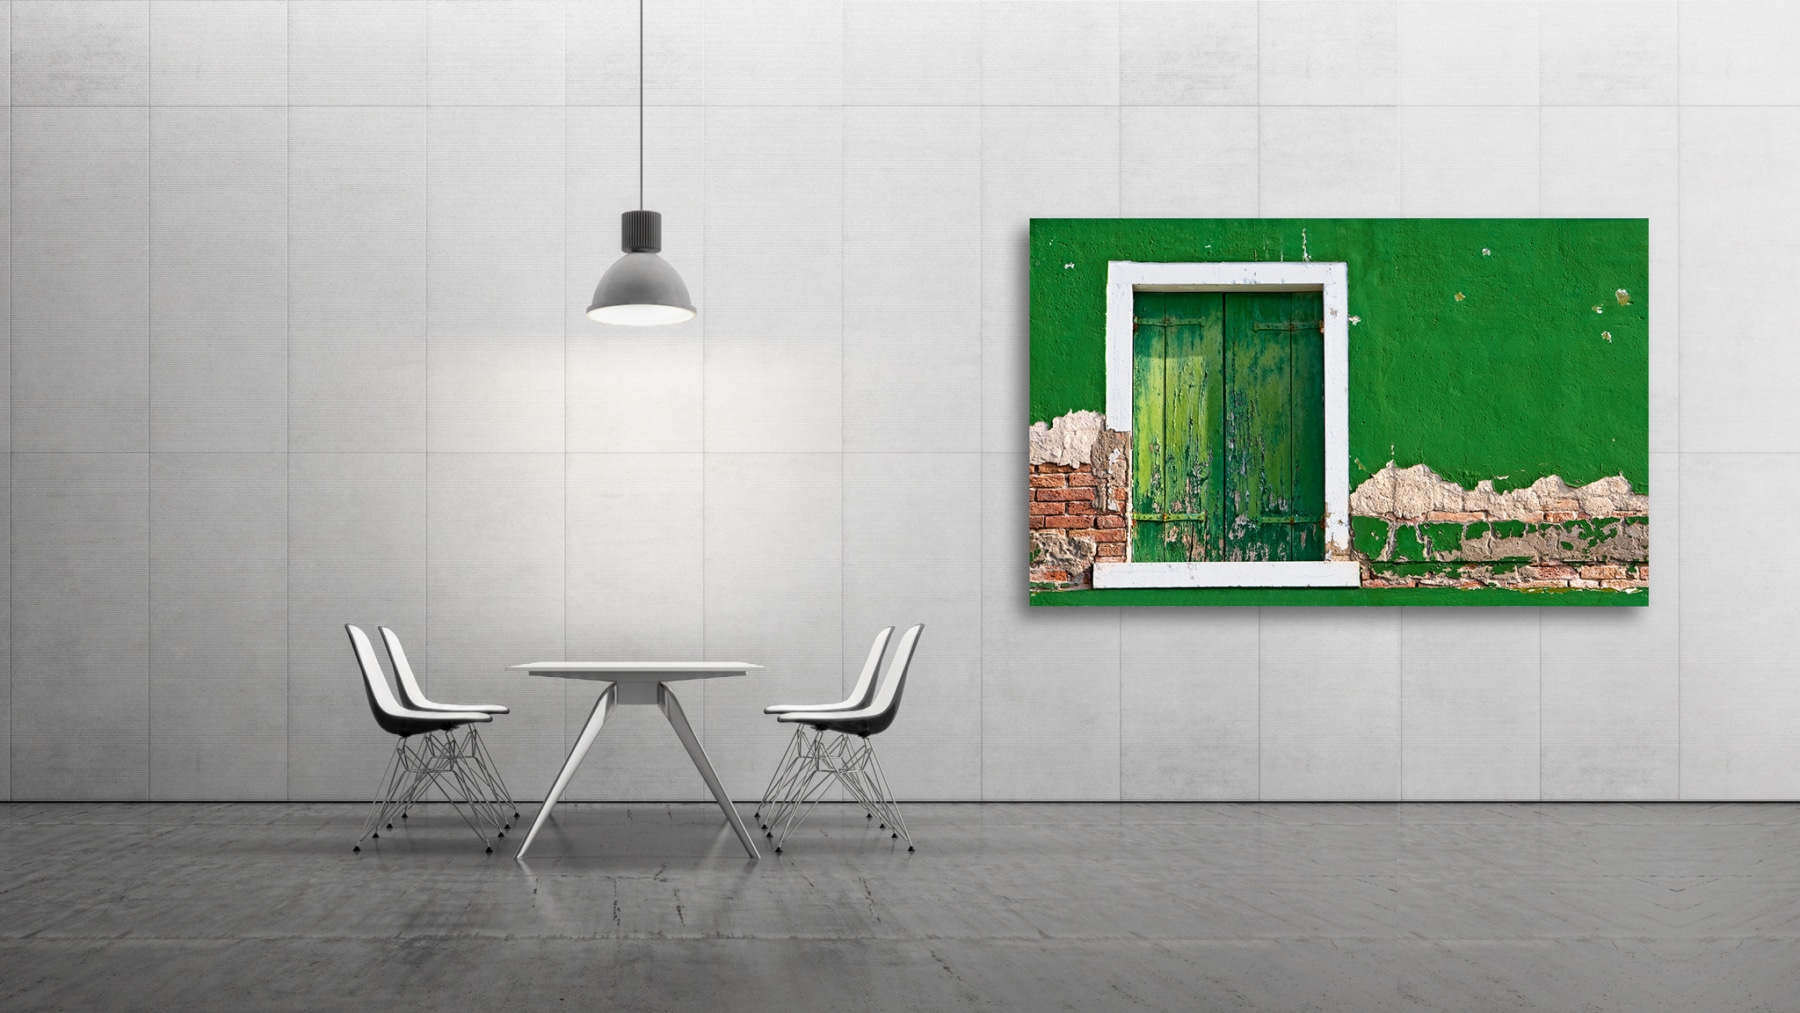 stressed green wall, Fine Art, Color, Farbe, Italy, Venedig, Burano, Gerry Pacher